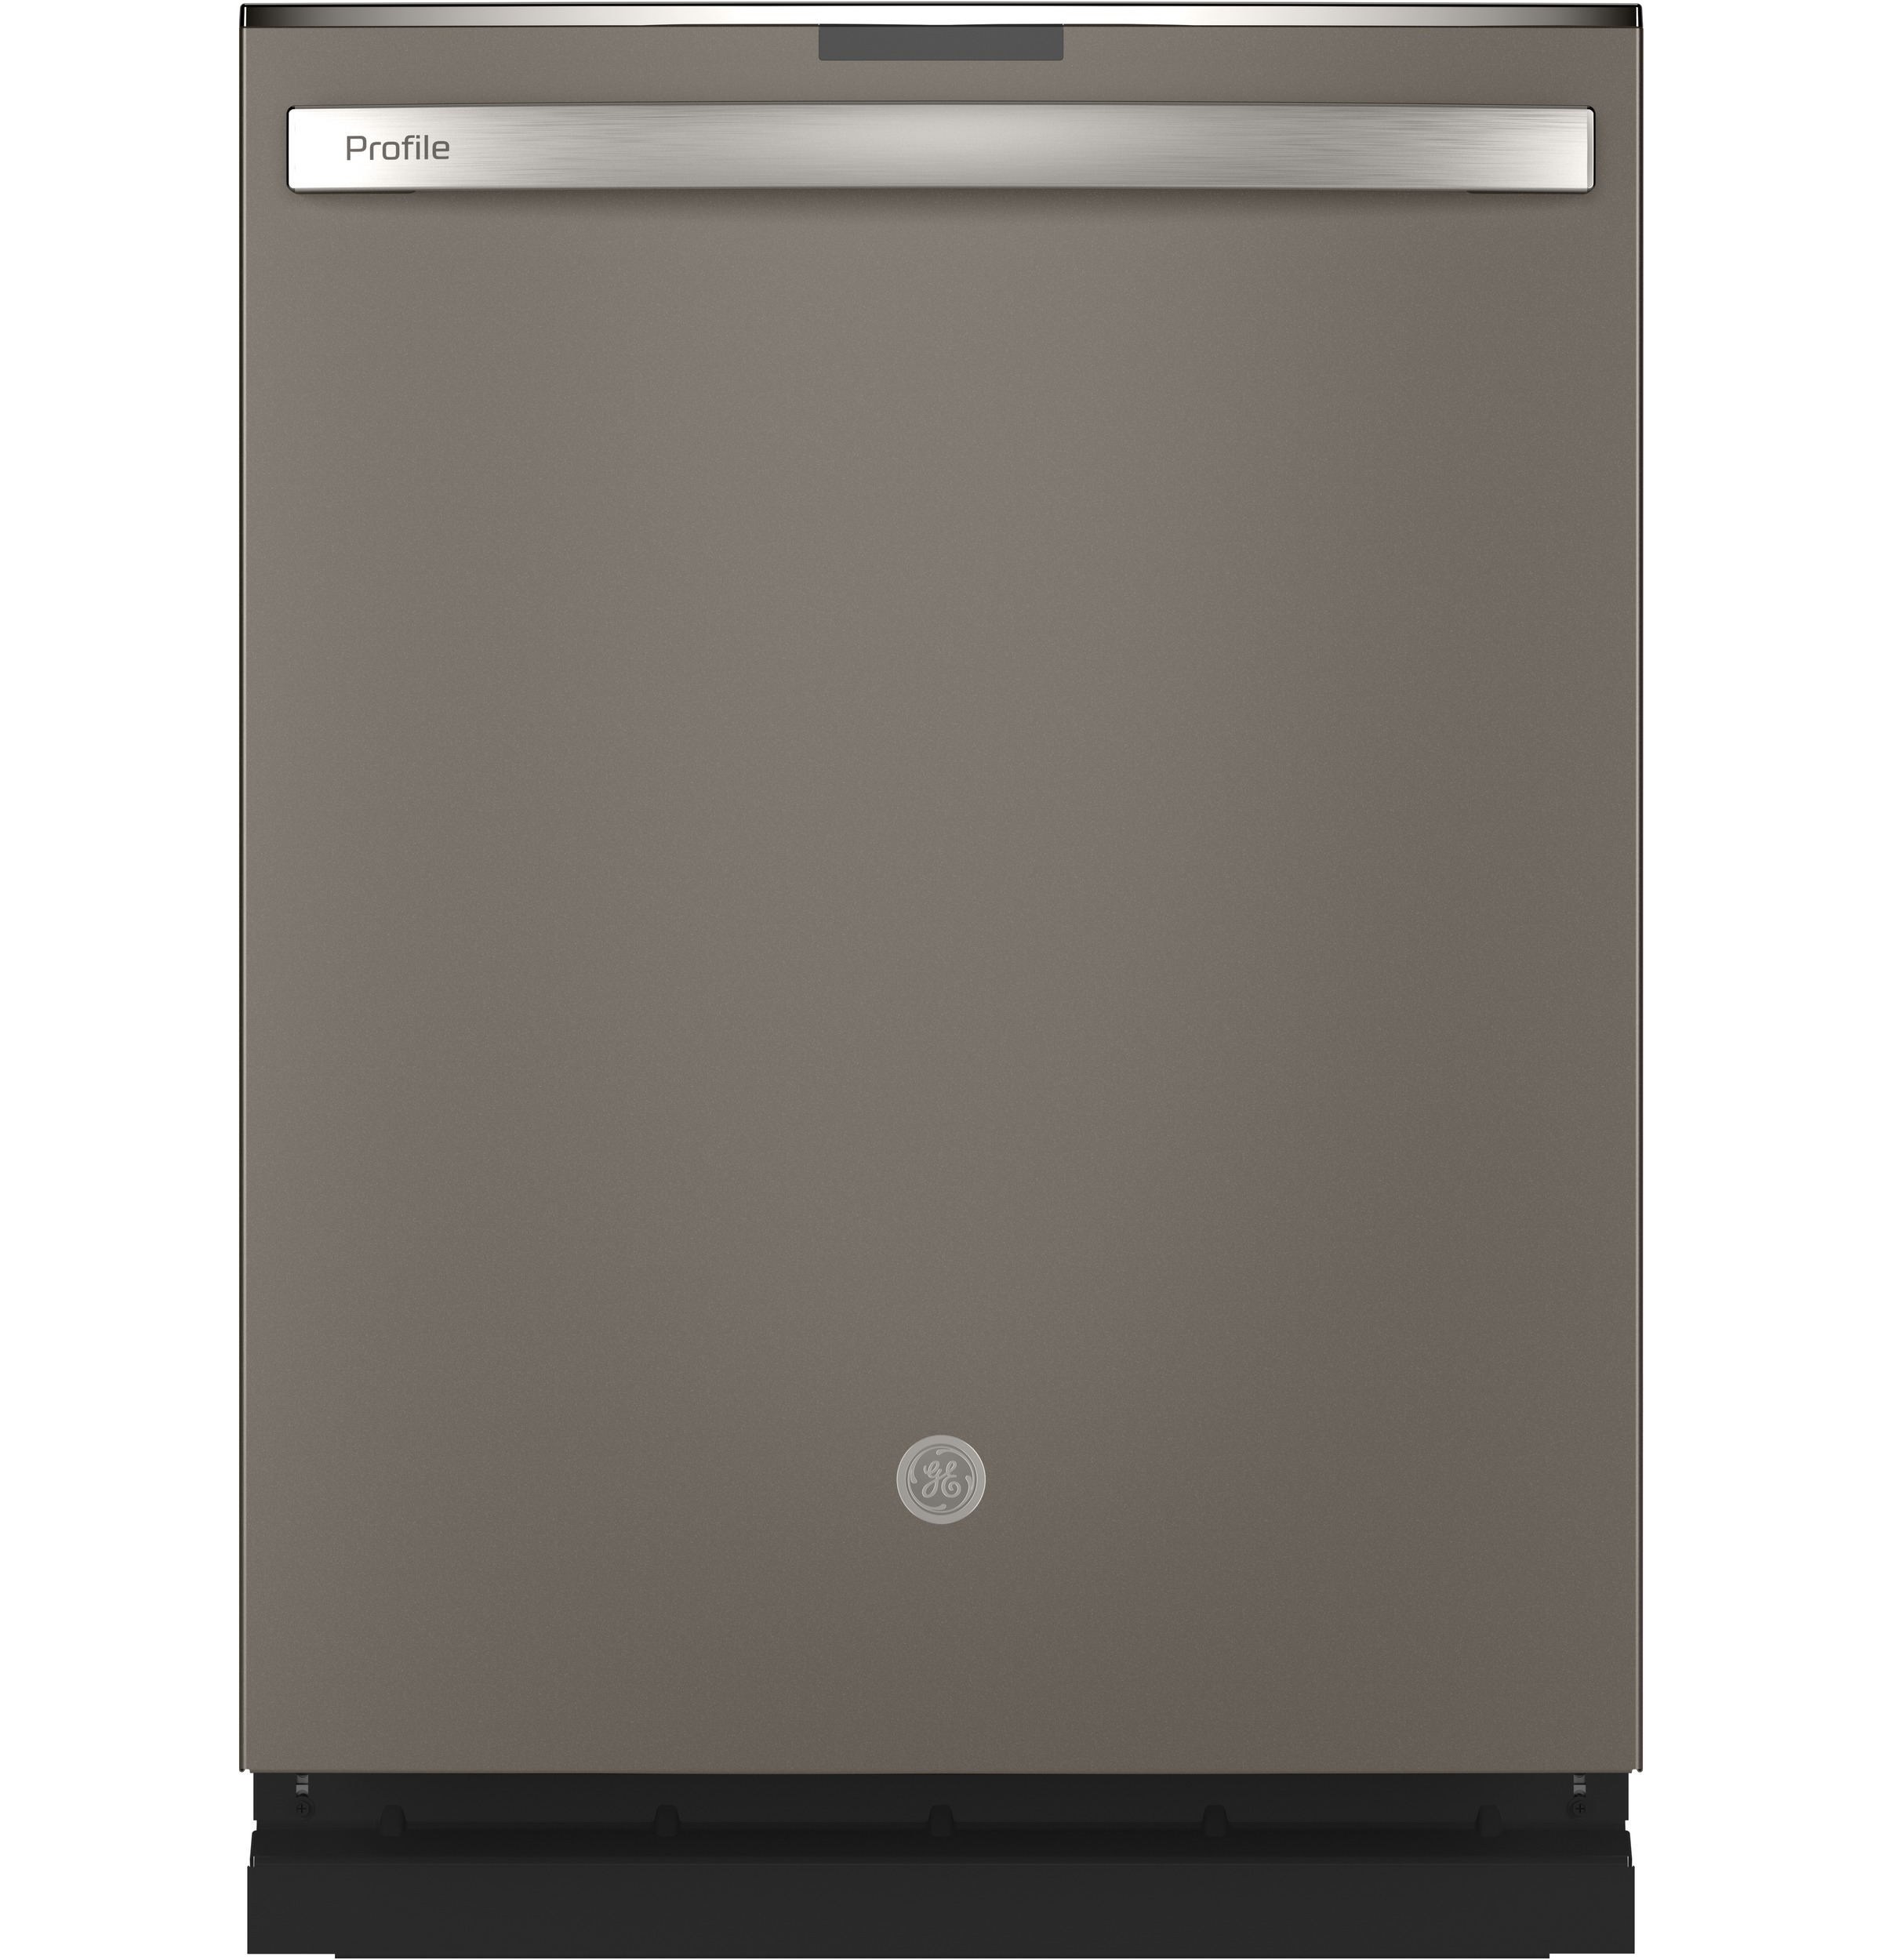 Model: PDT715SMNES | GE Profile GE Profile™ Top Control with Stainless Steel Interior Dishwasher with Sanitize Cycle & Dry Boost with Fan Assist